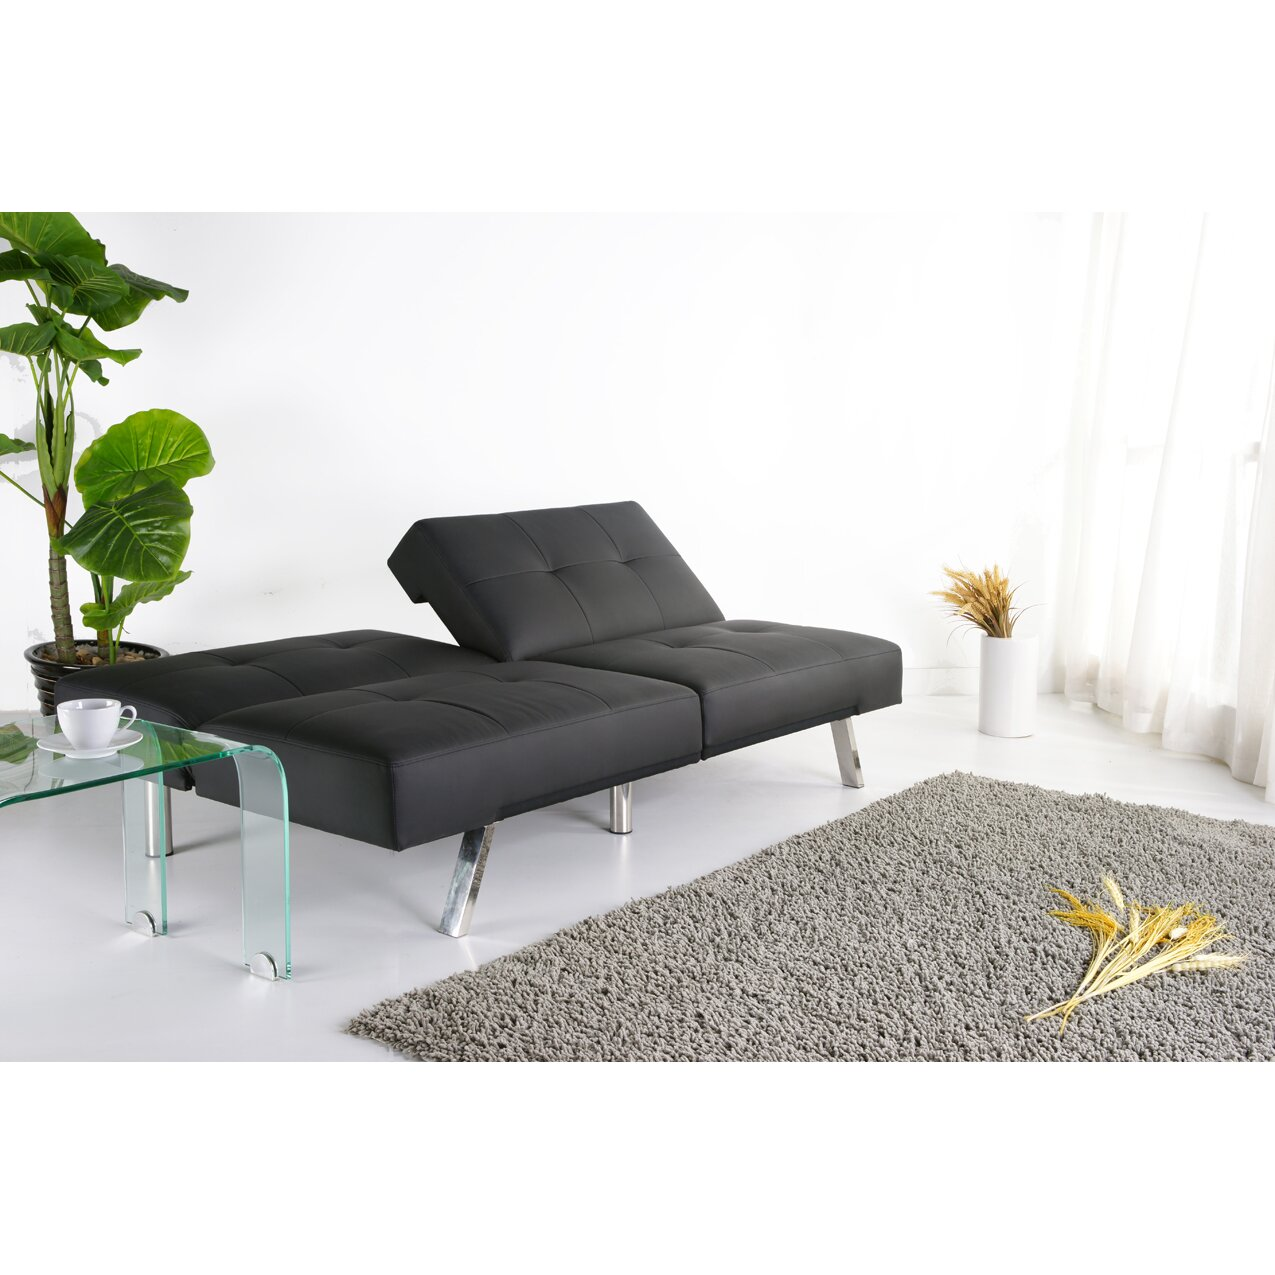 leader lifestyle royale 3 seater clic clac sofa bed reviews. Black Bedroom Furniture Sets. Home Design Ideas